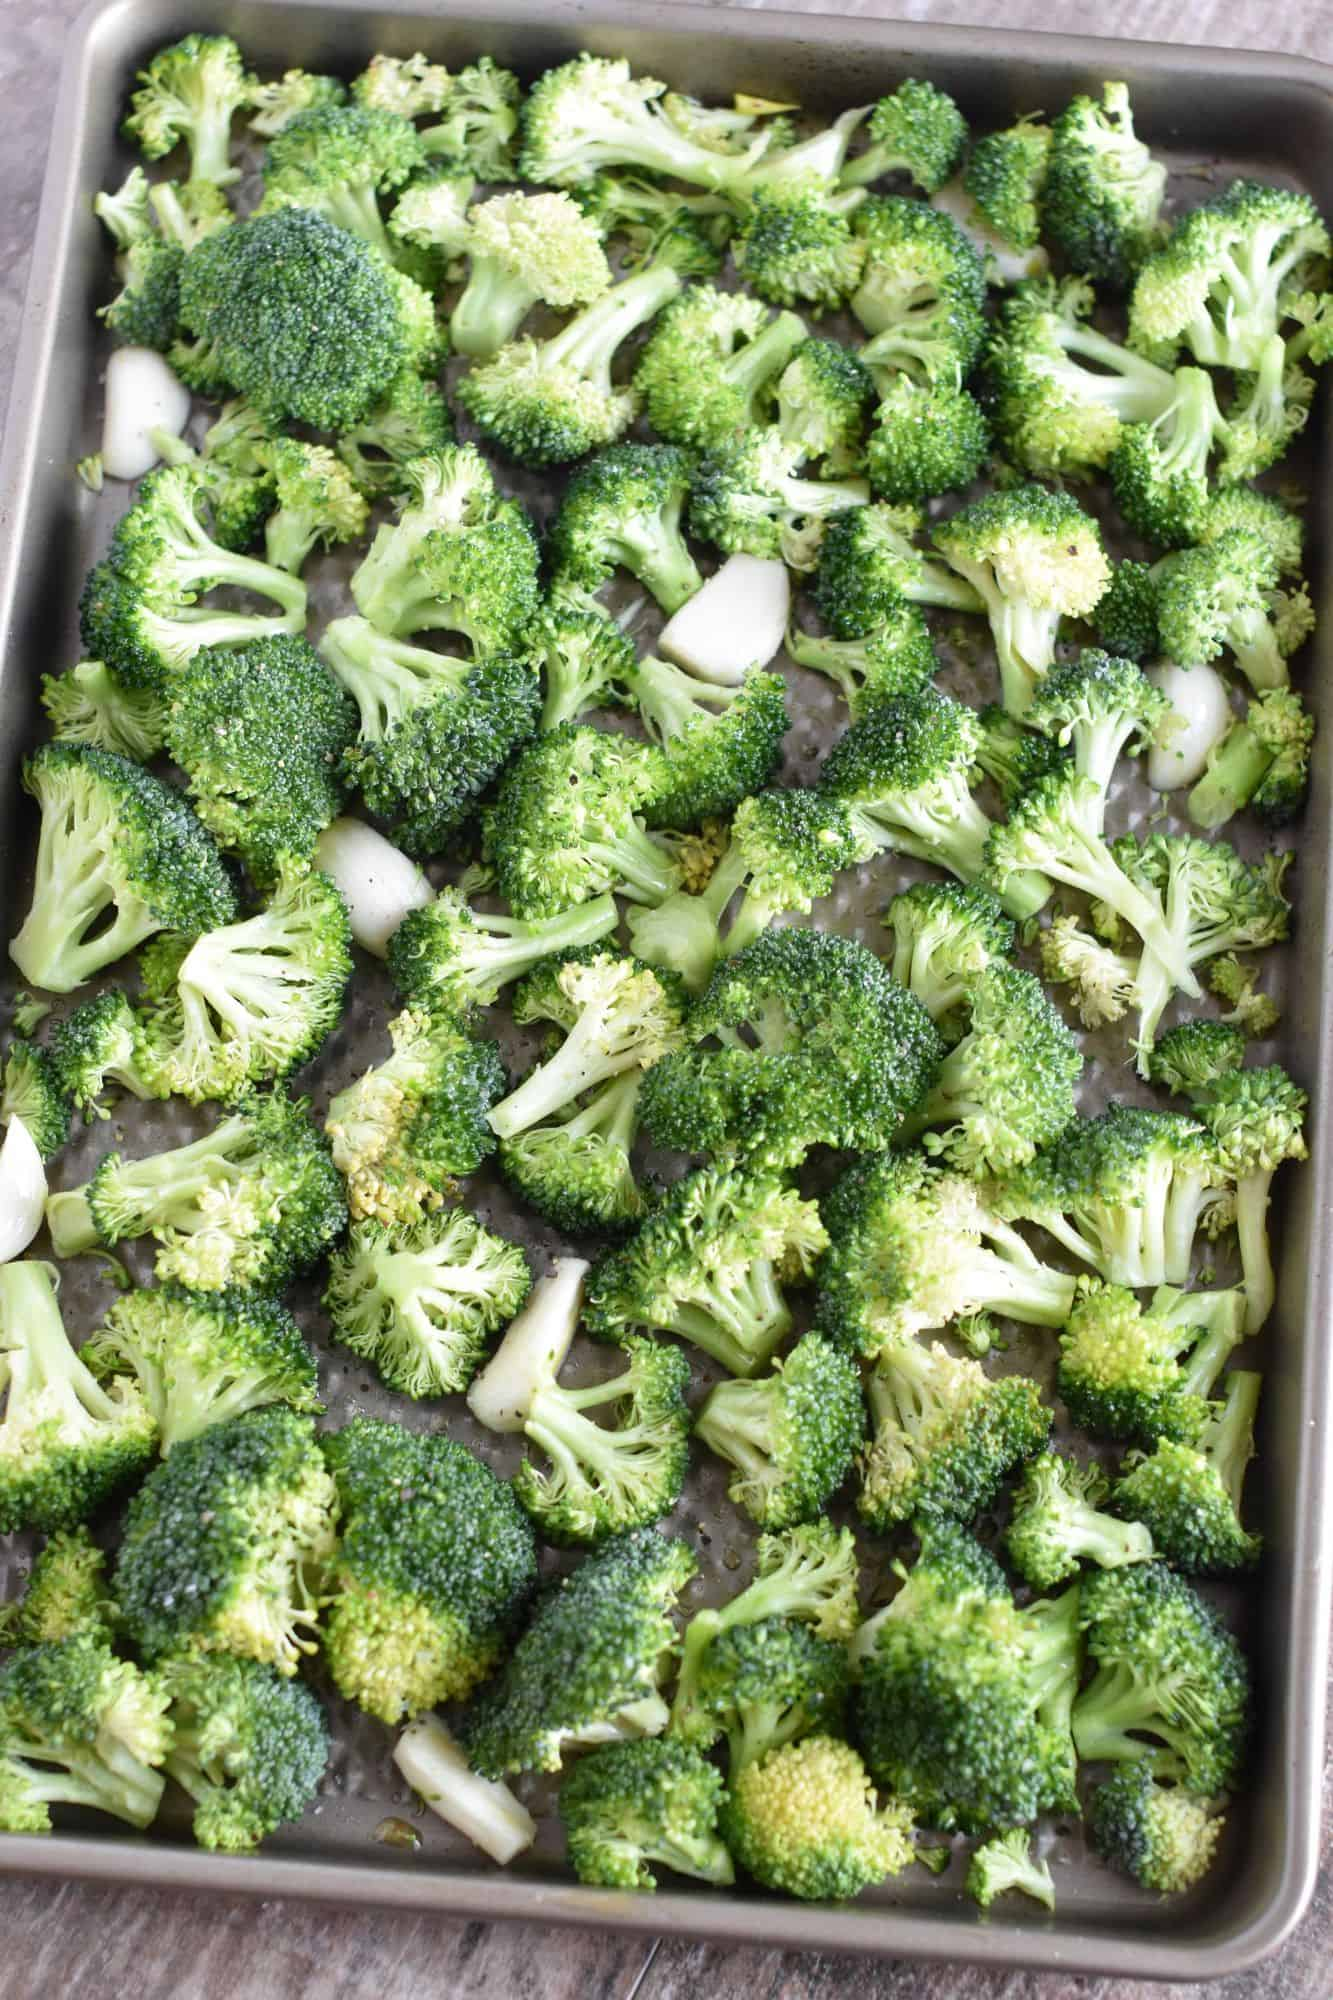 broccoli and garlic with olive oil, salt and pepper